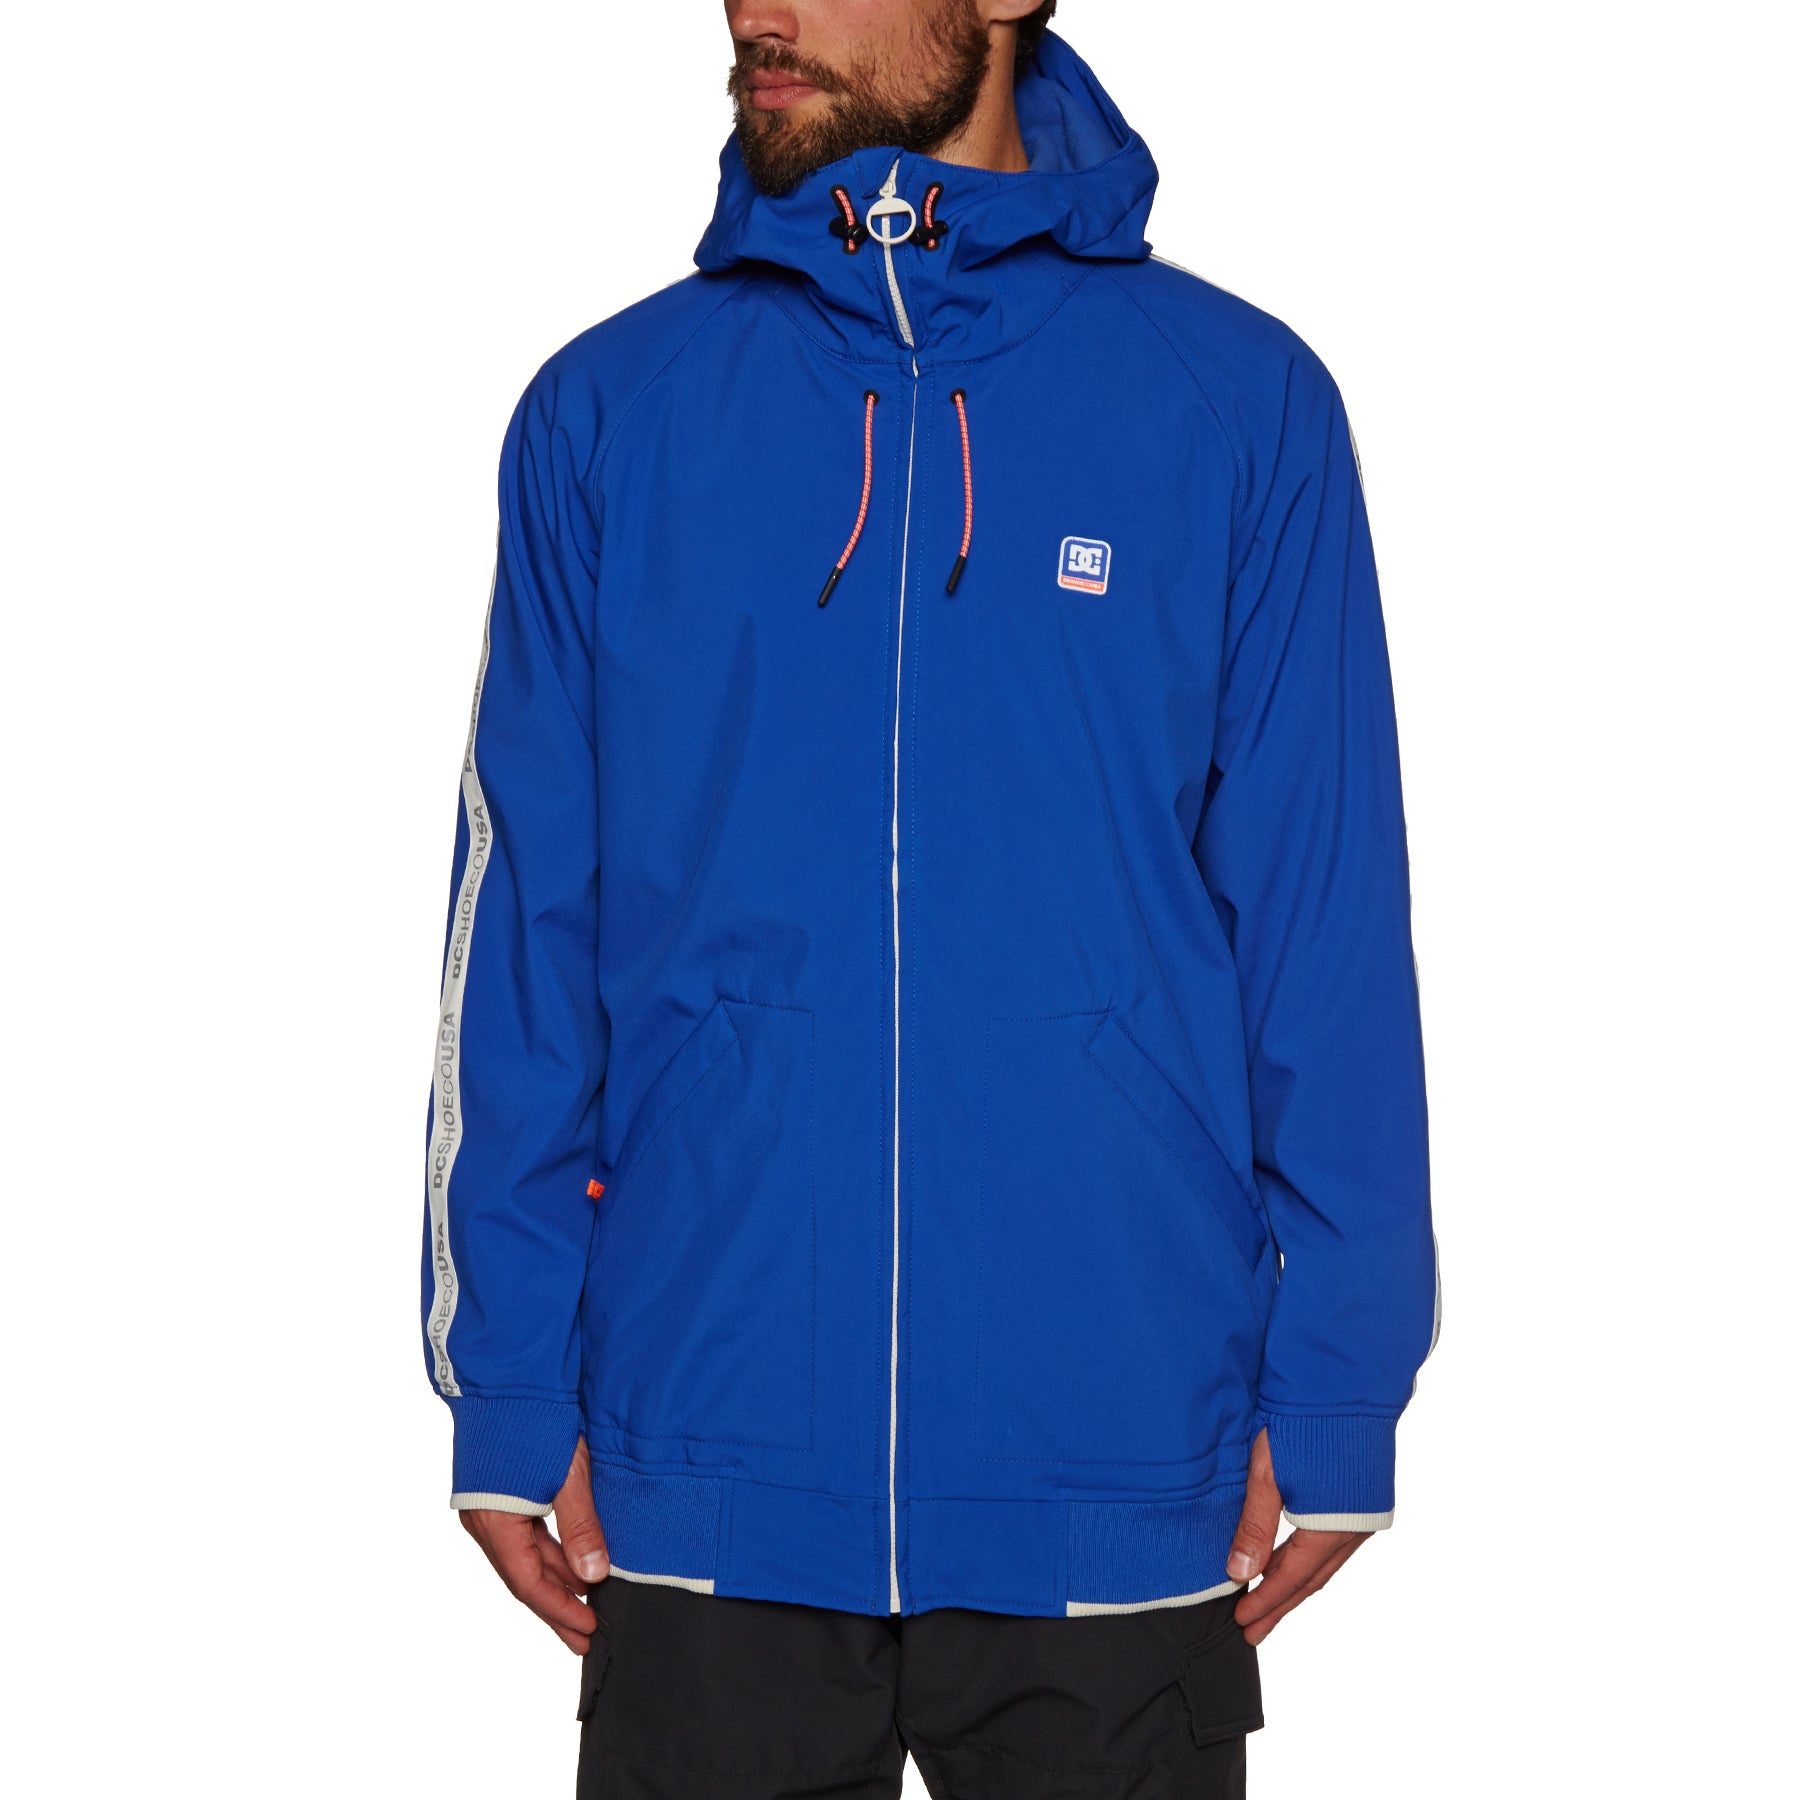 DC Spectrum Snow Jacket - Surf The Web